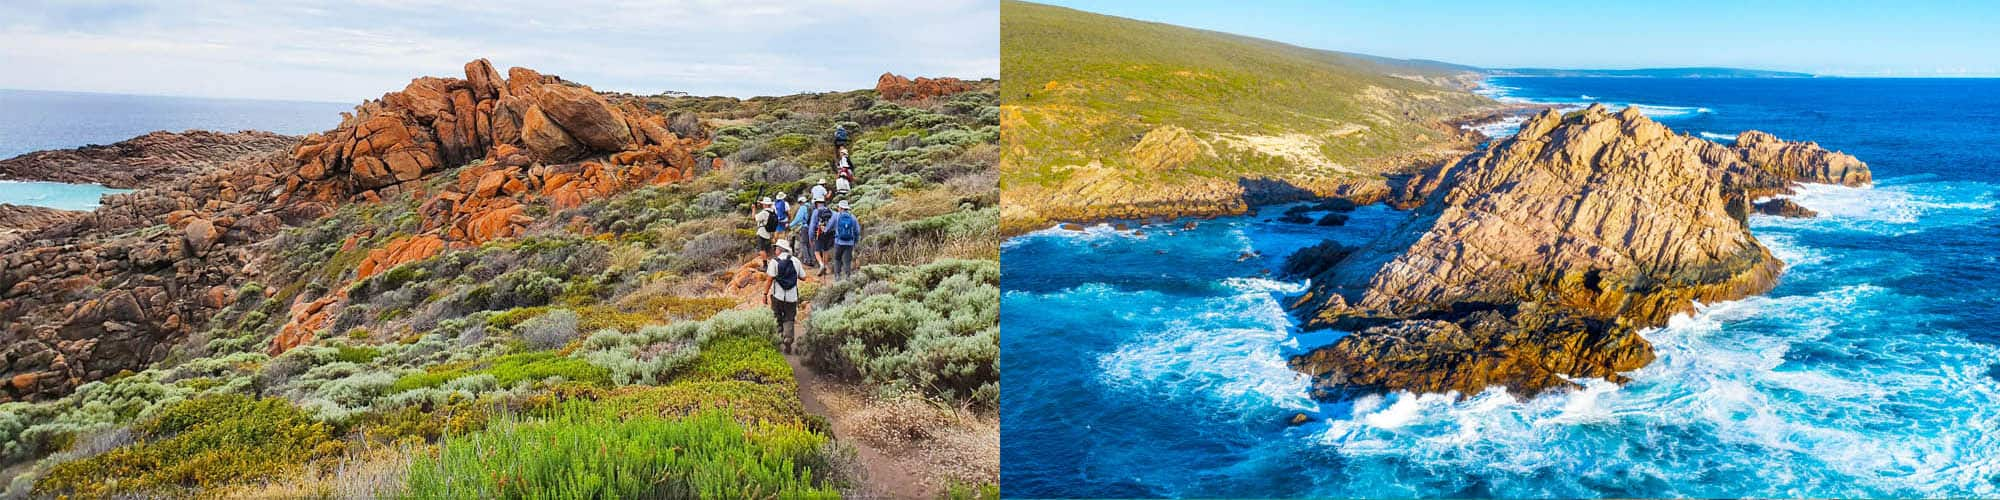 Cape to Cape and Bibbulmun walk